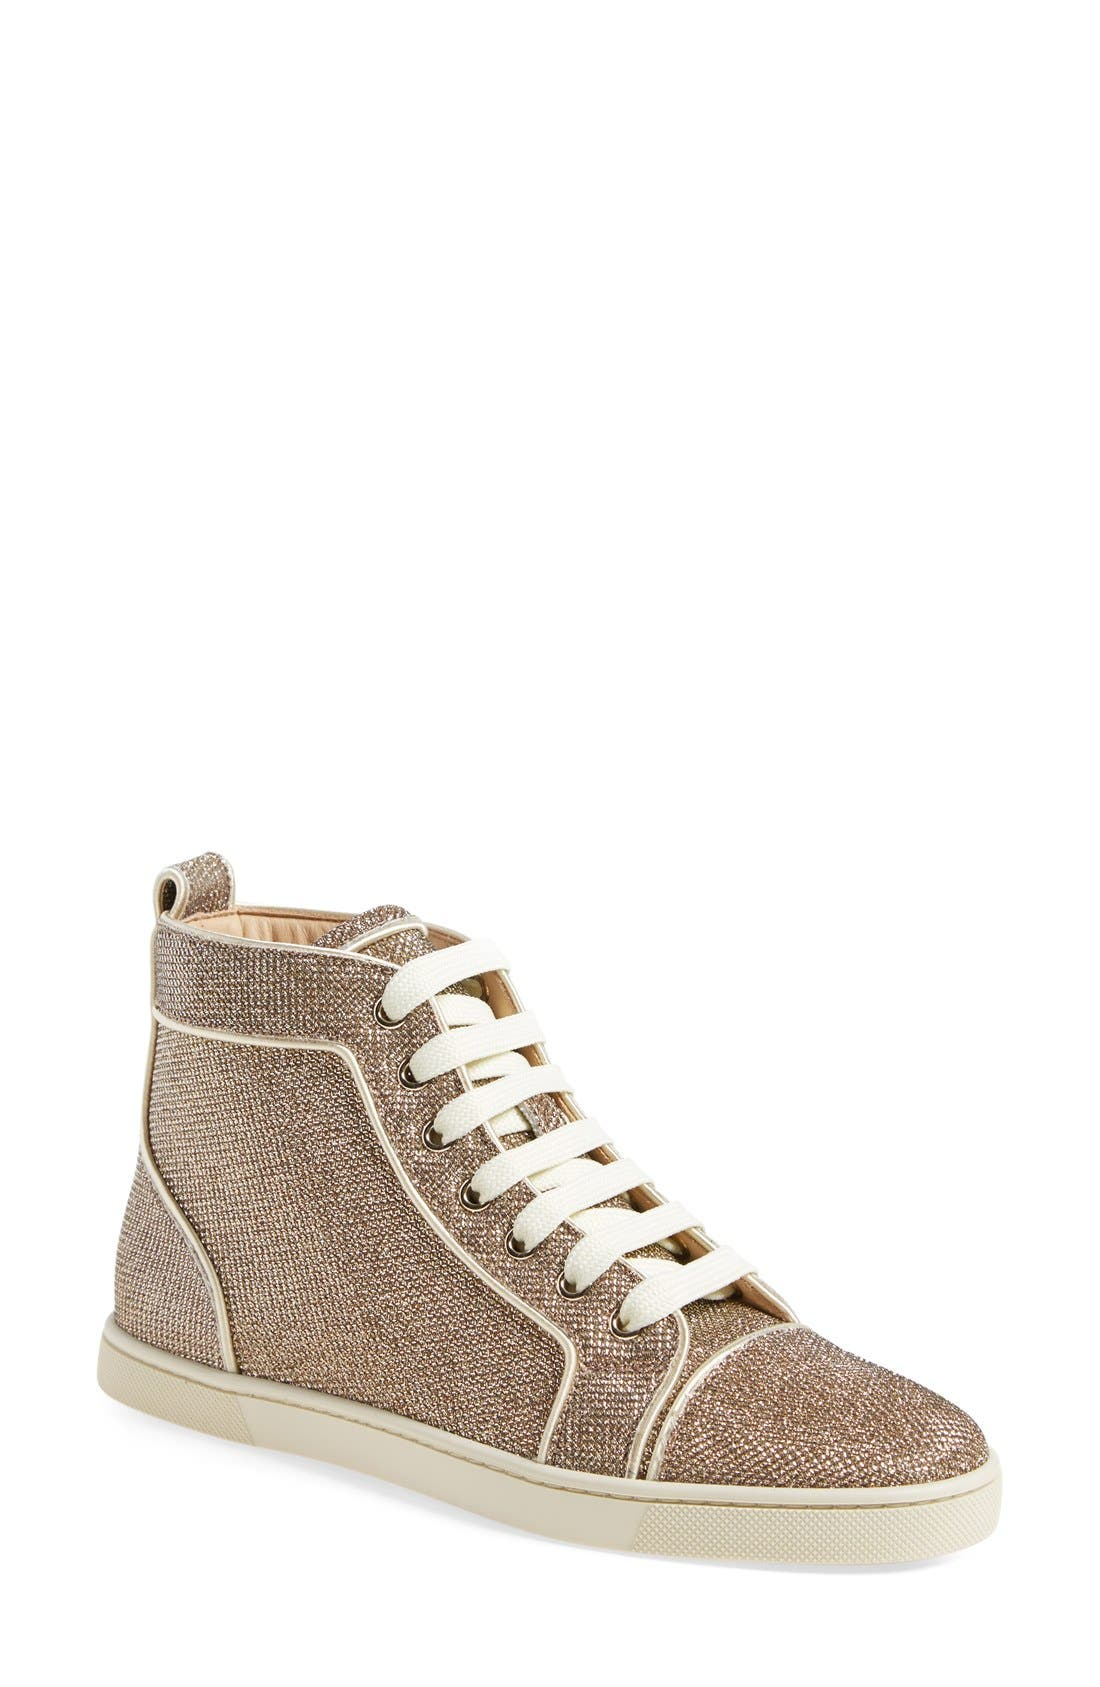 Bip Bip High Top Sneaker,                             Main thumbnail 3, color,